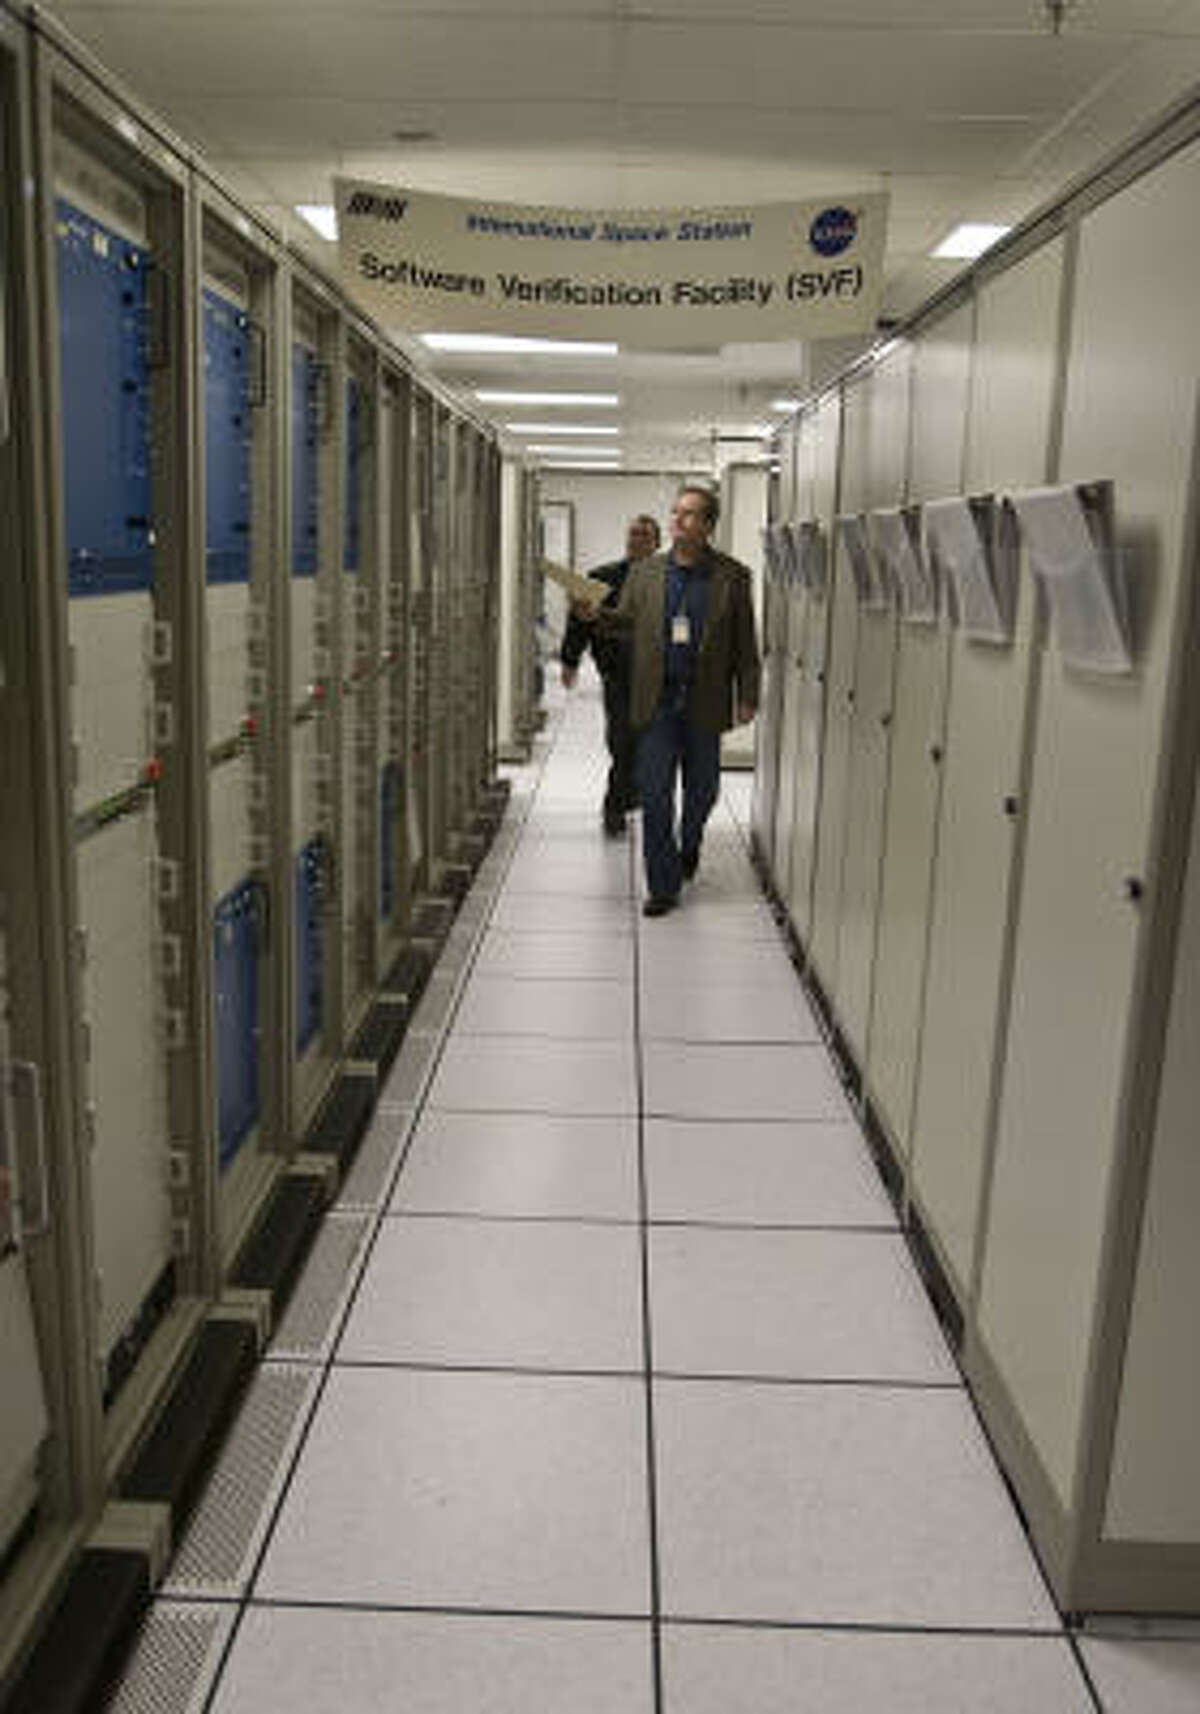 Boeing's Cary Cheatam, left, and Steven Cox walk along a bank of computers at the software verification facility where computers used on the International Space Station are tested. The station will get new core programming in 2011.